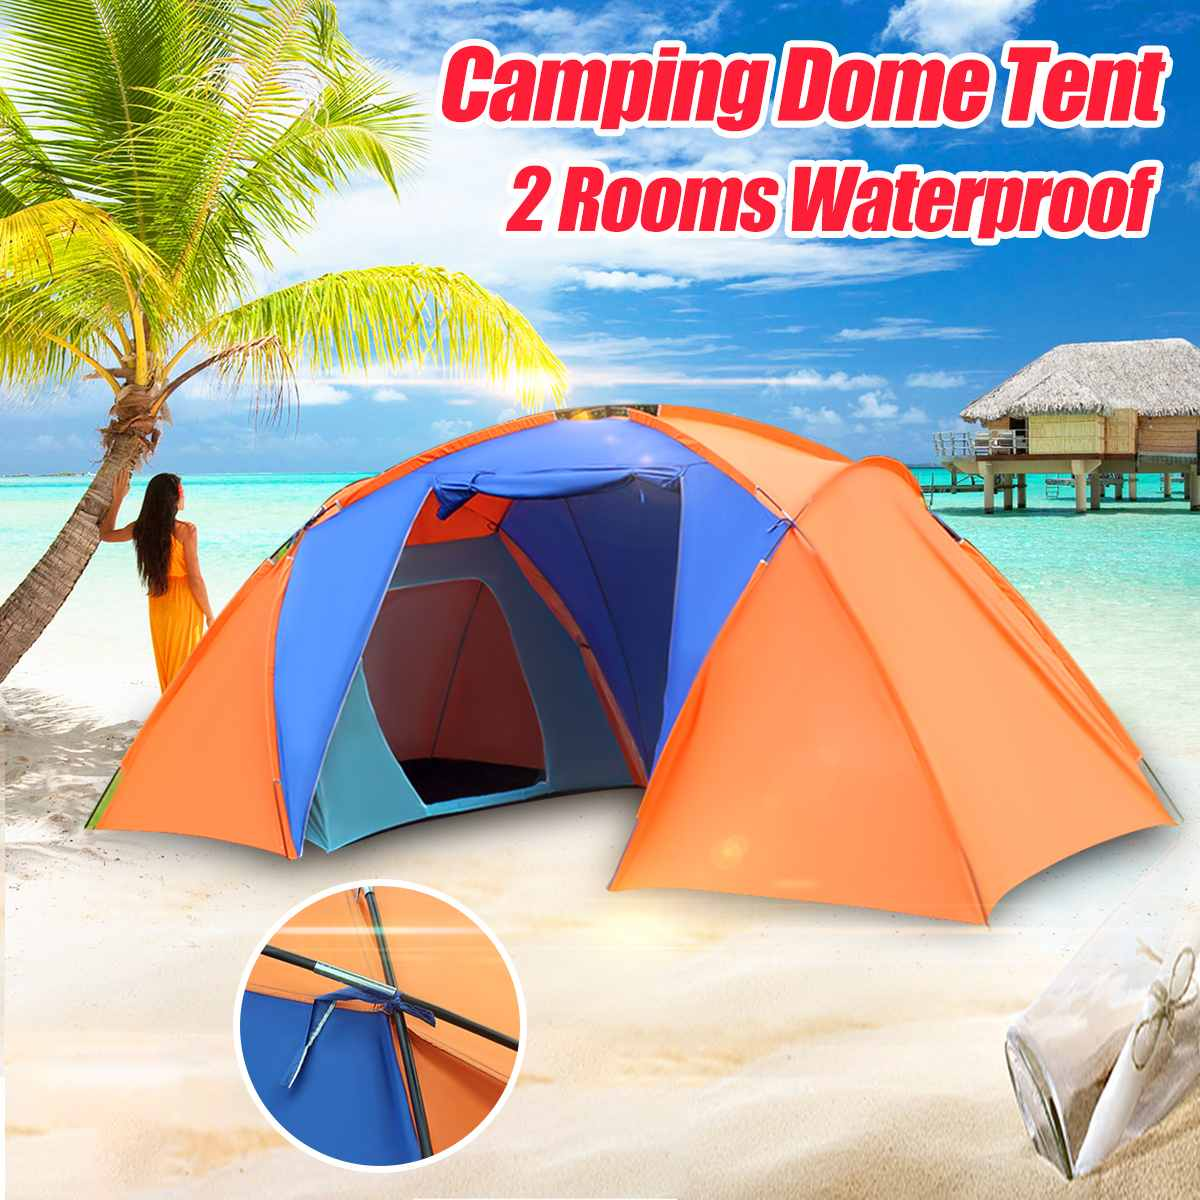 5-8 Person Camping Dome Tent Canvas Family Hiking 2 Rooms 1 Living Waterproof Hiking Fishing Travelling Instant UV Shelter Tent5-8 Person Camping Dome Tent Canvas Family Hiking 2 Rooms 1 Living Waterproof Hiking Fishing Travelling Instant UV Shelter Tent